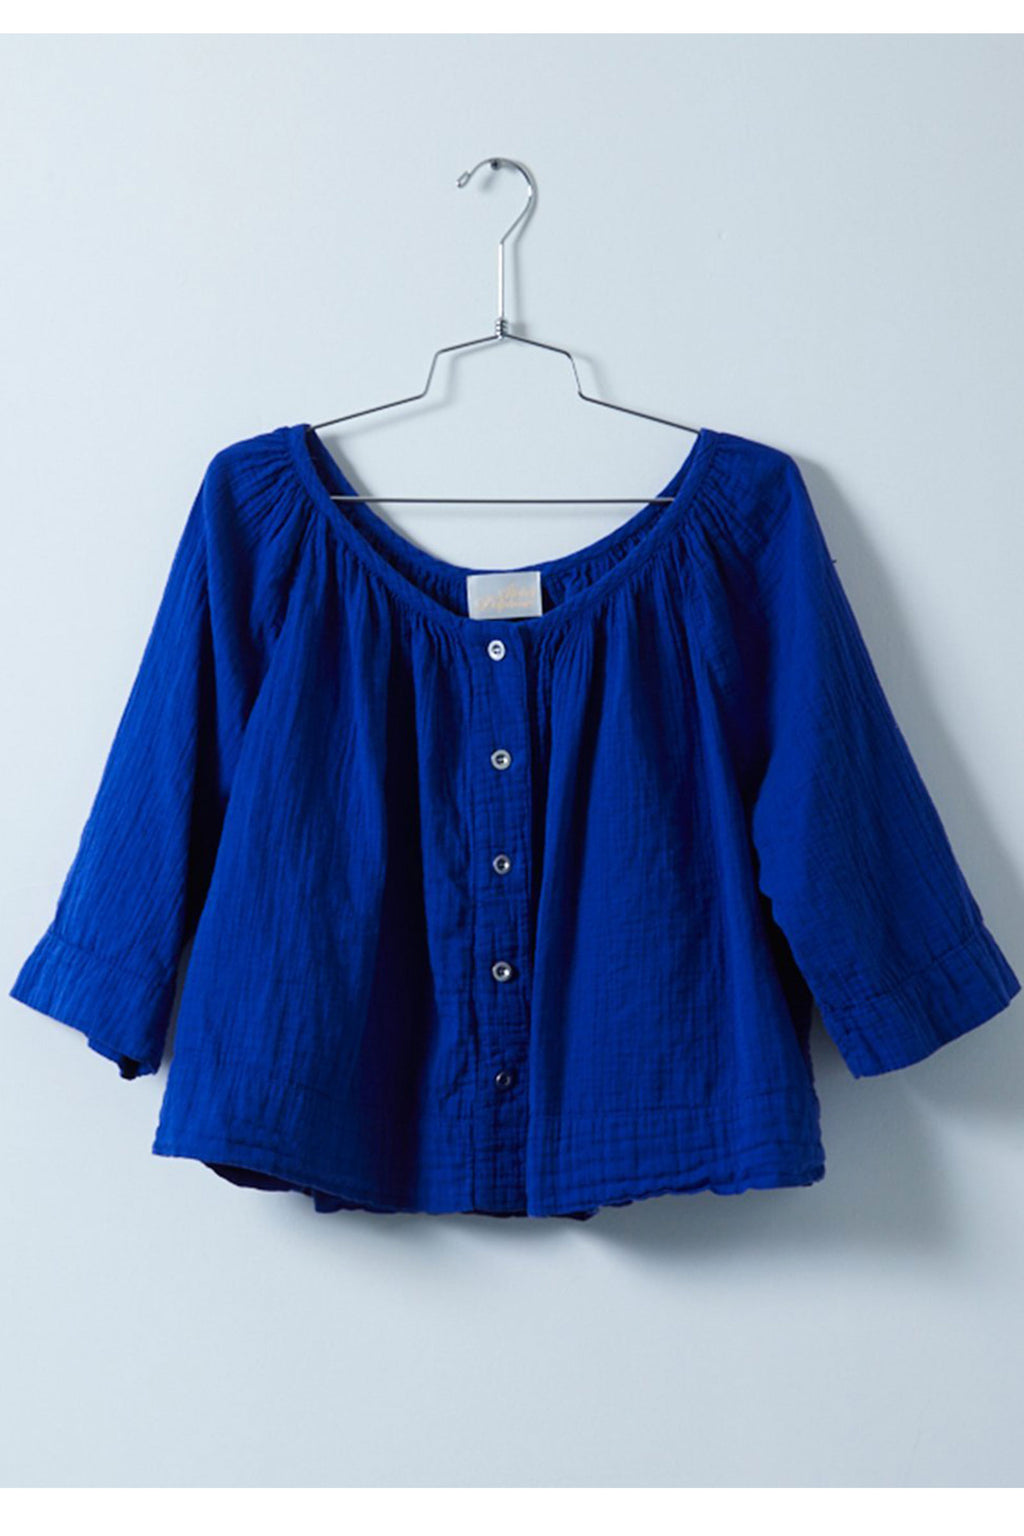 Atelier Delphine Millie Top in Majorelle Blue